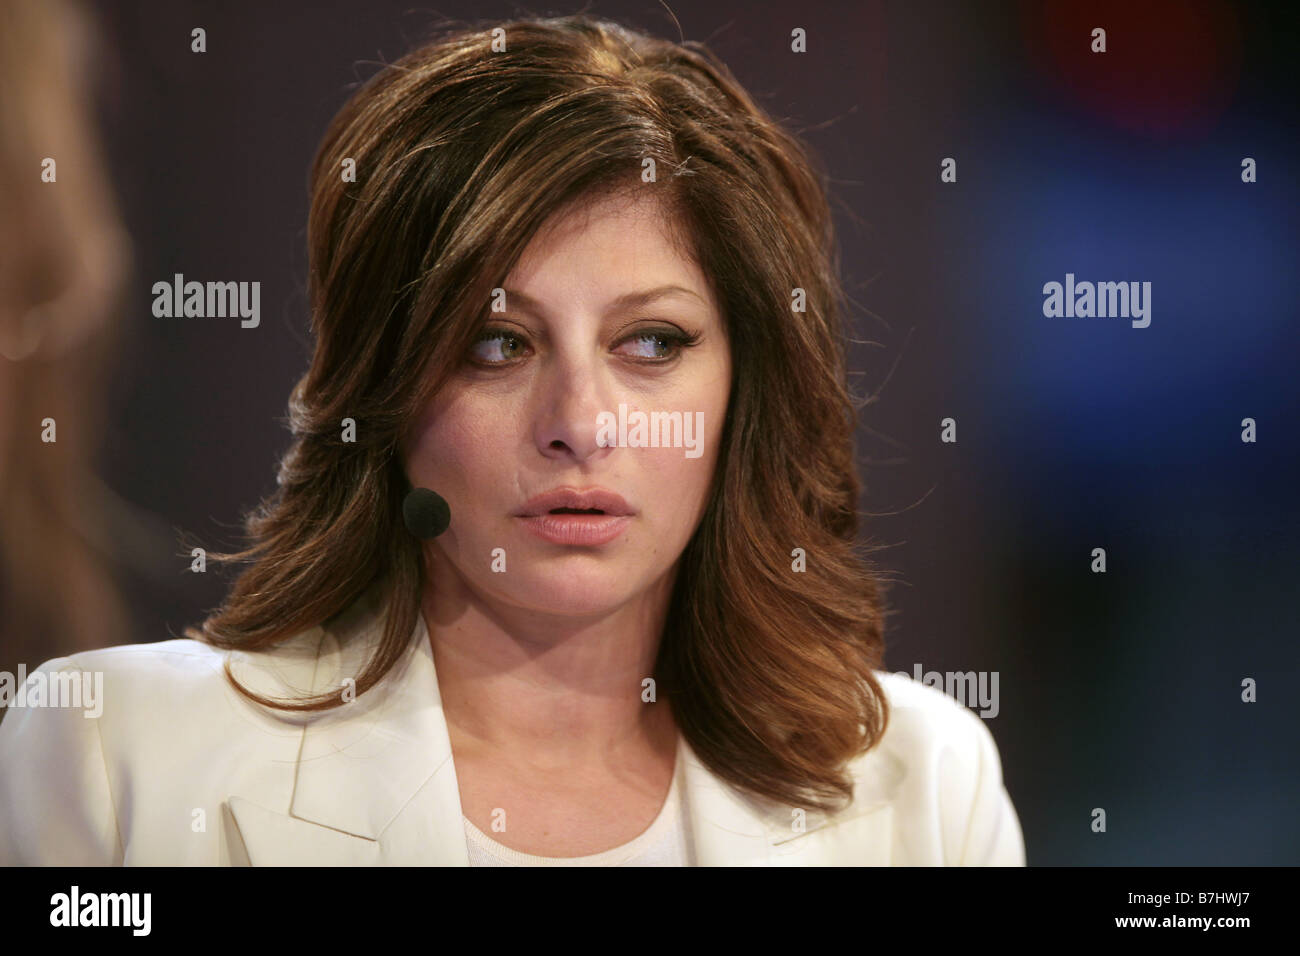 Jan 8, 2009 - Las Vegas, Nevada, USA - NBC financial expert MARIA BARTIROMO broadcasts live on CNBC during CES electronics - Stock Image